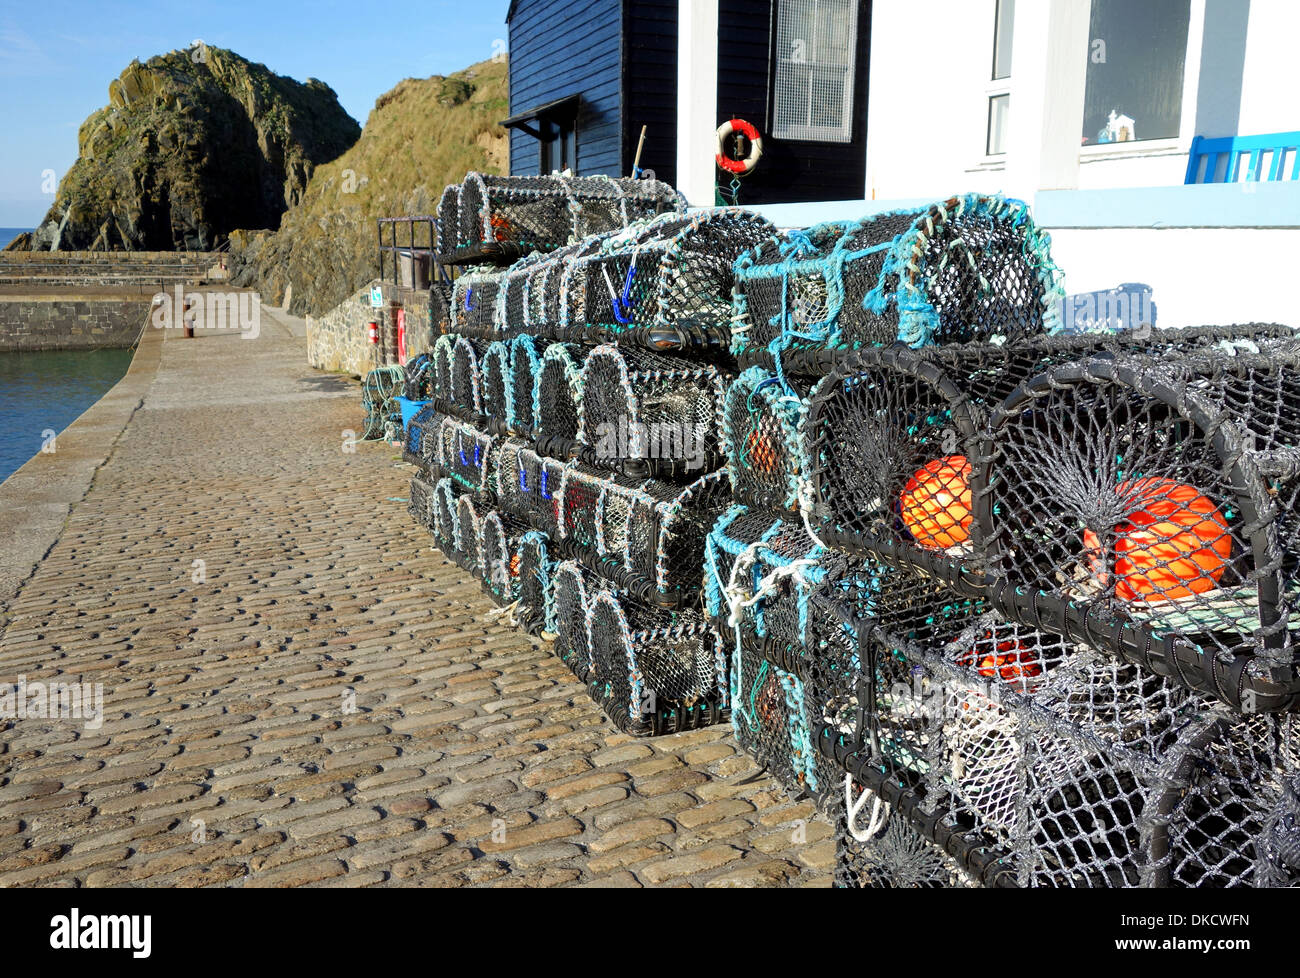 Crab and Lobster pots stored at the harbour in Mullion, Cornwall, UK - Stock Image